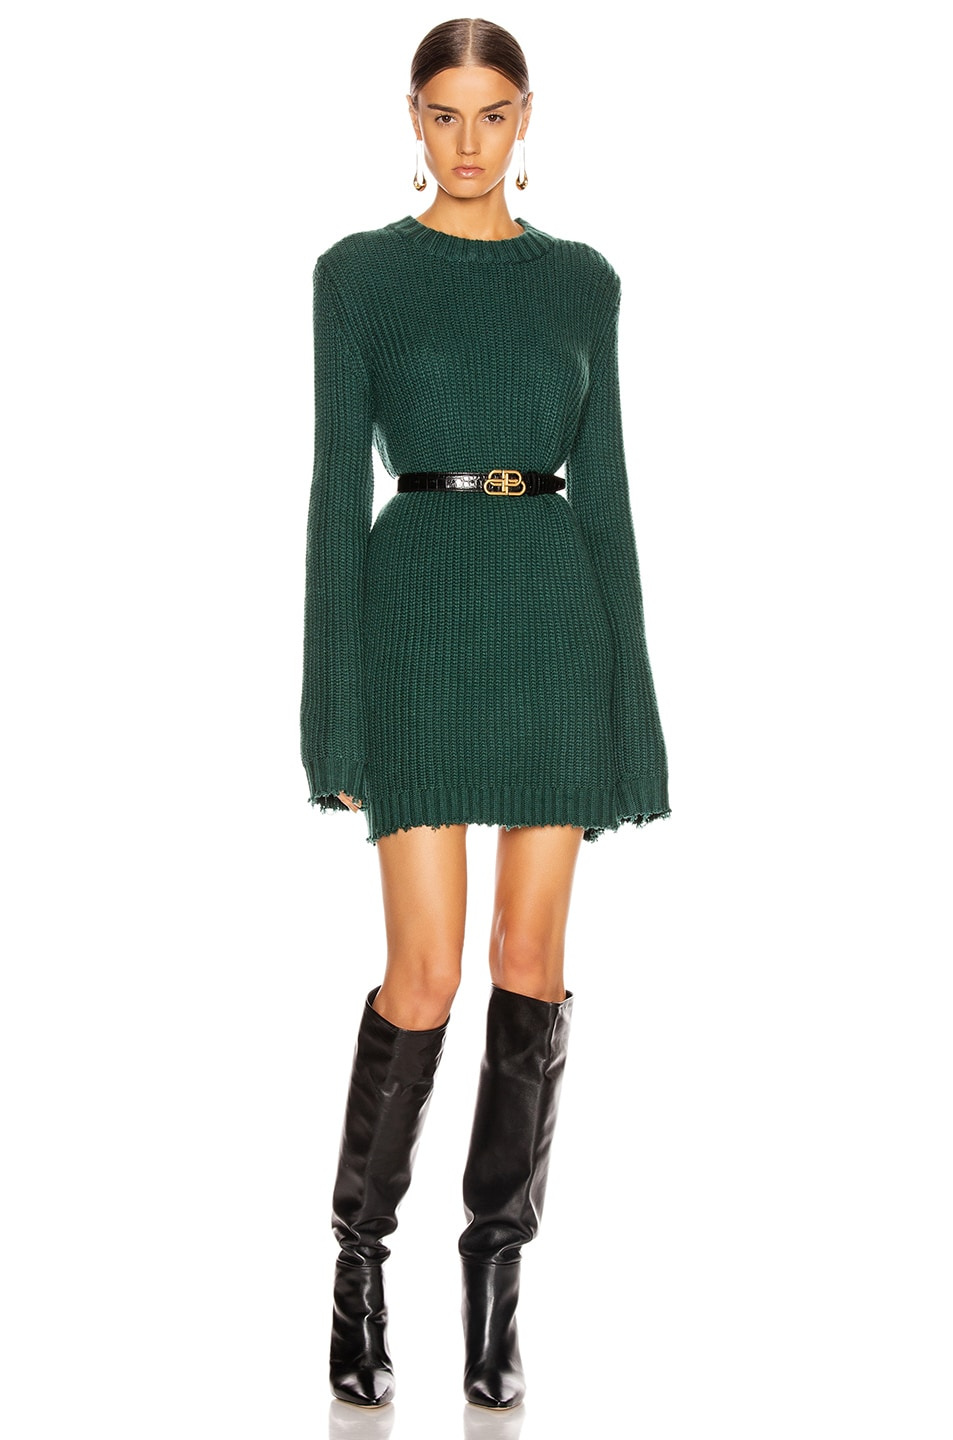 Image 1 of GRLFRND Lane Crewneck Sweater in Evergreen